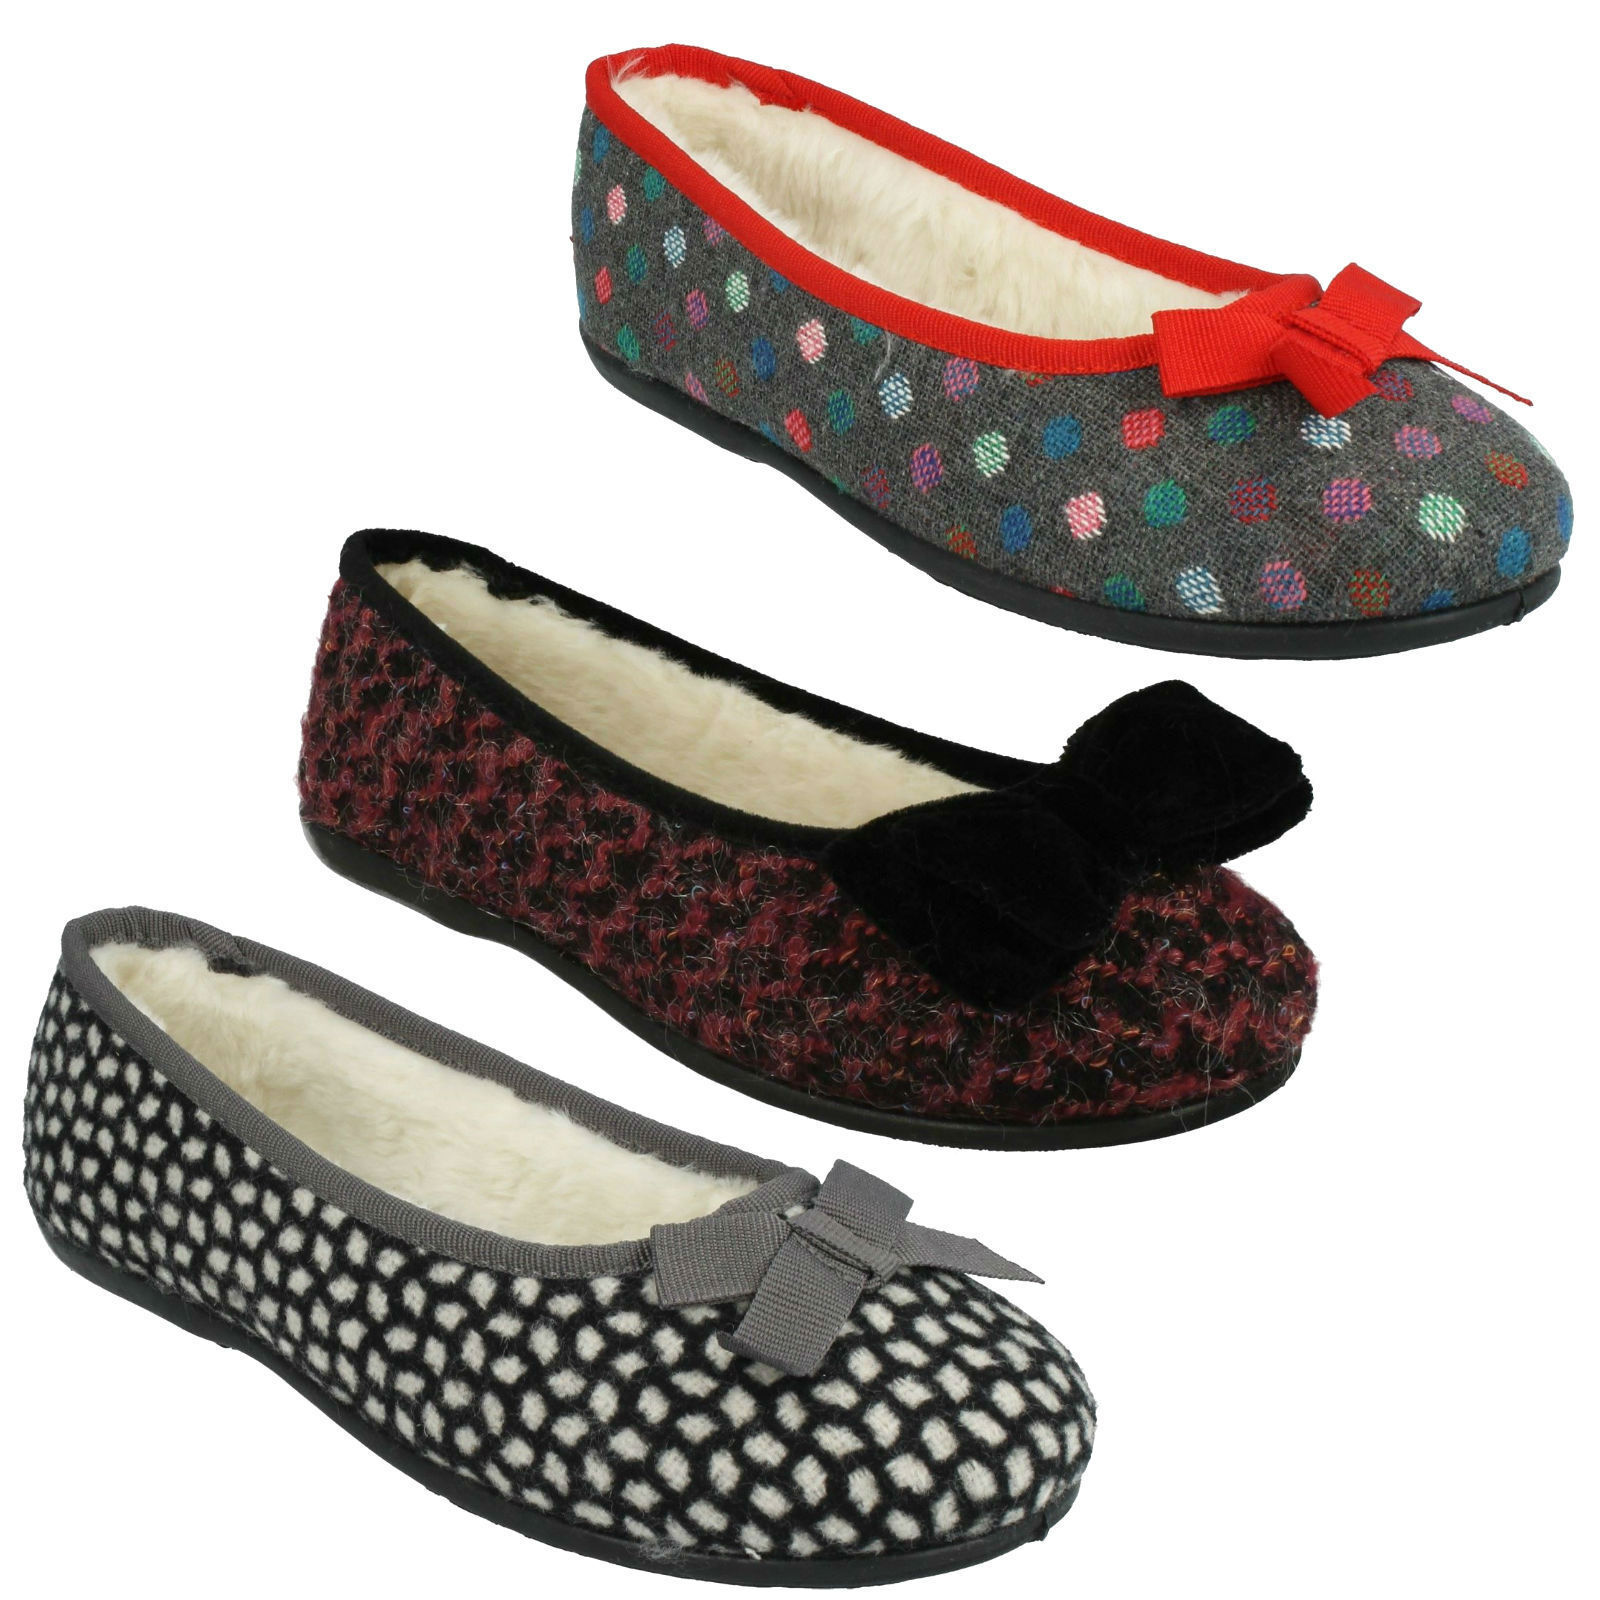 LADIES CLARKS BOW FAUX FUR BALLERINA WIDE WARM FLAT SLIPPERS SHOES ADELLA ANGEL